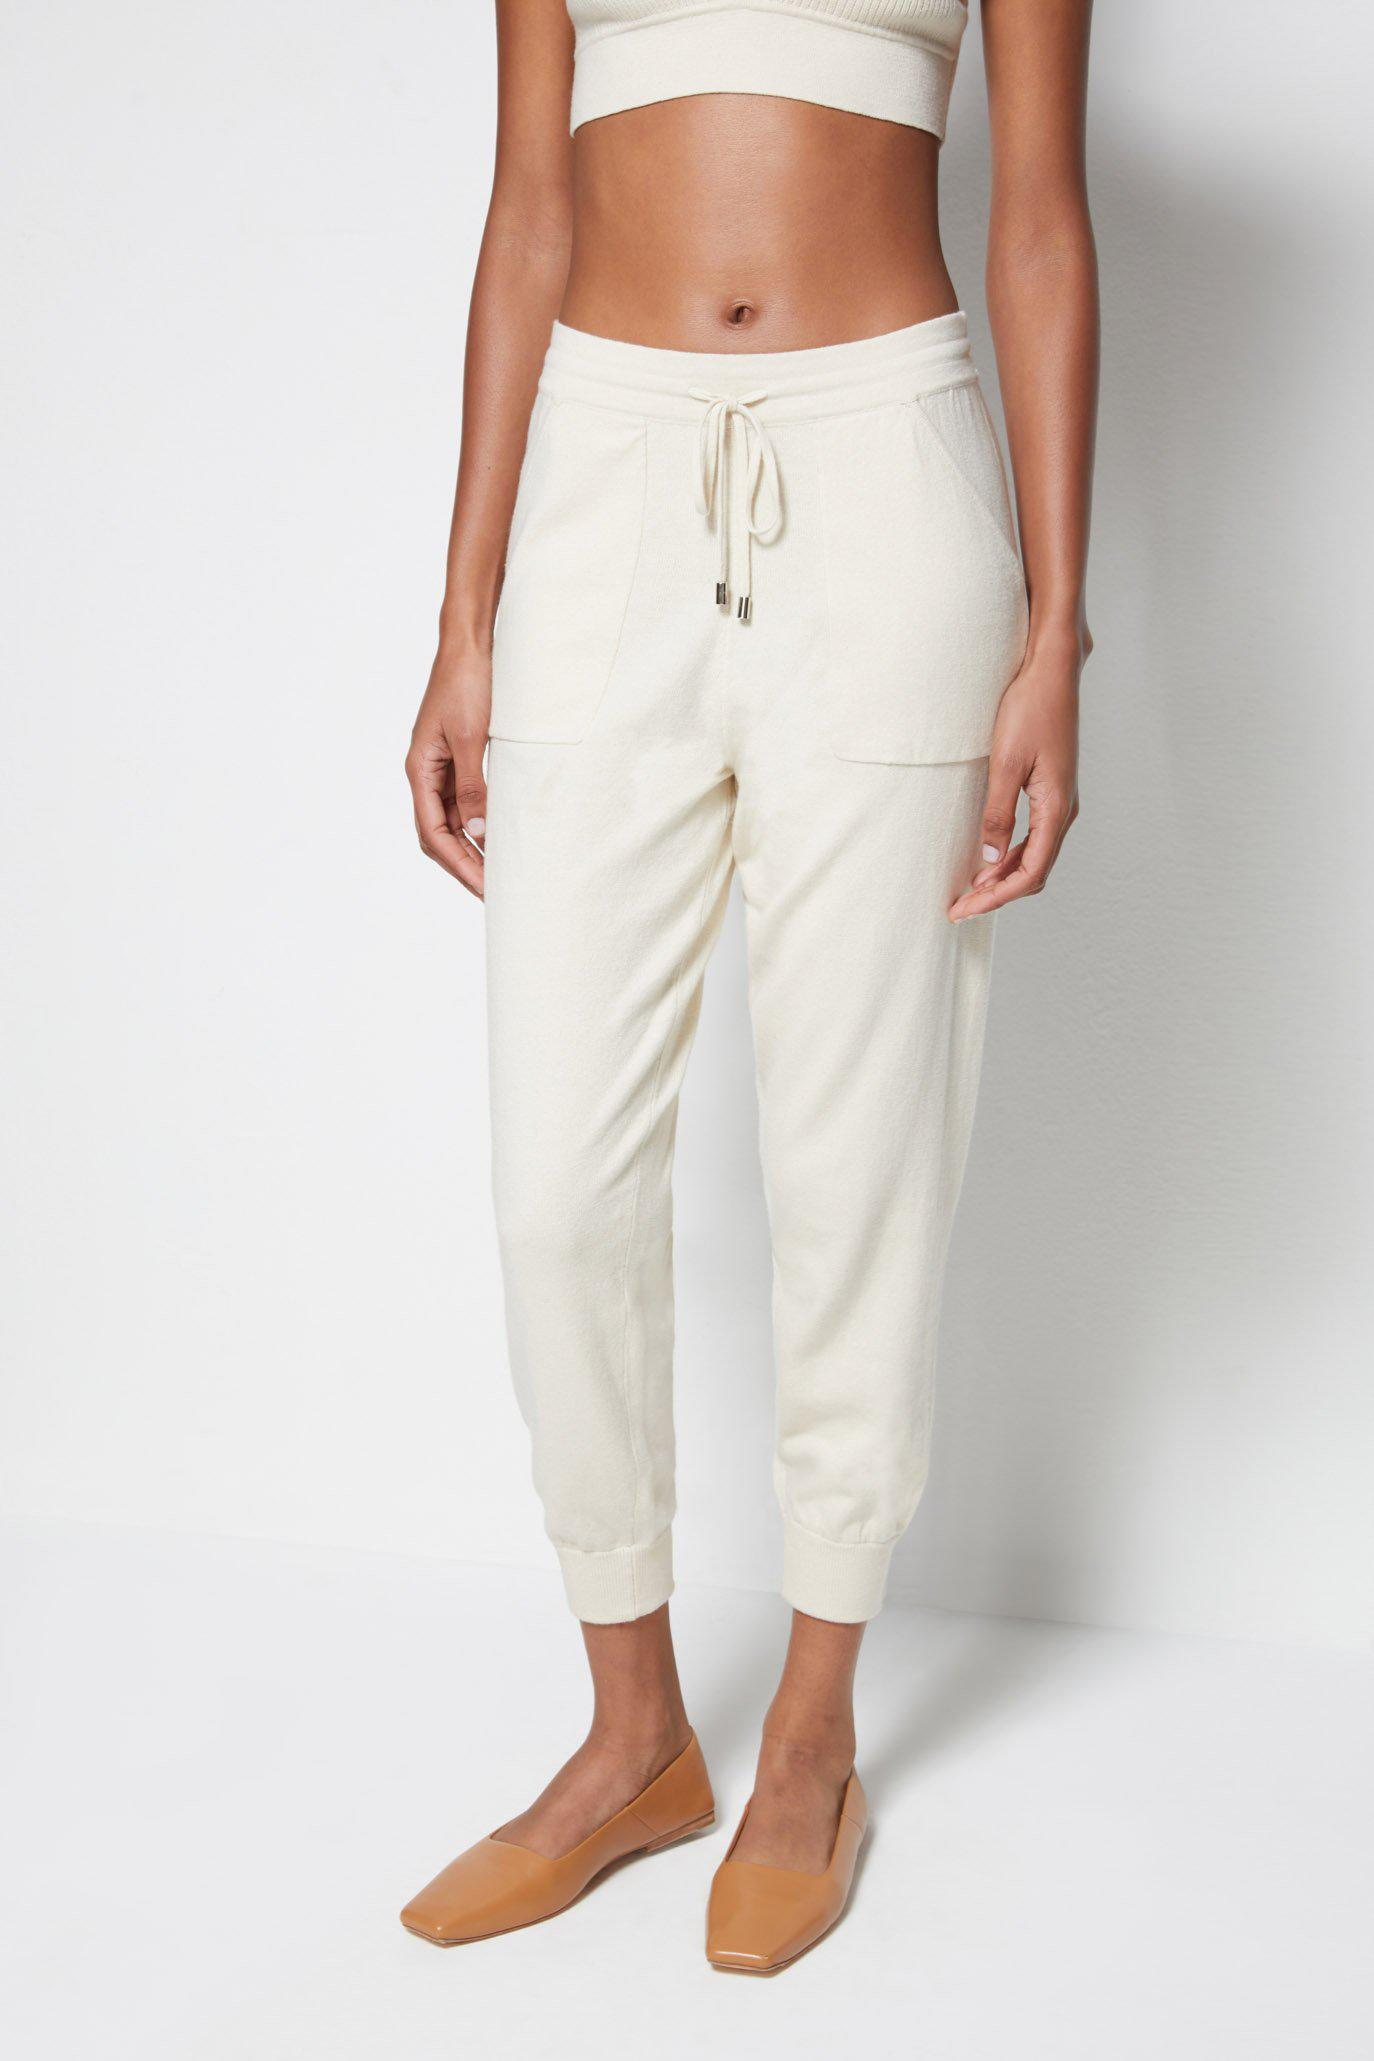 Off-Duty Cashmere Joggers 1